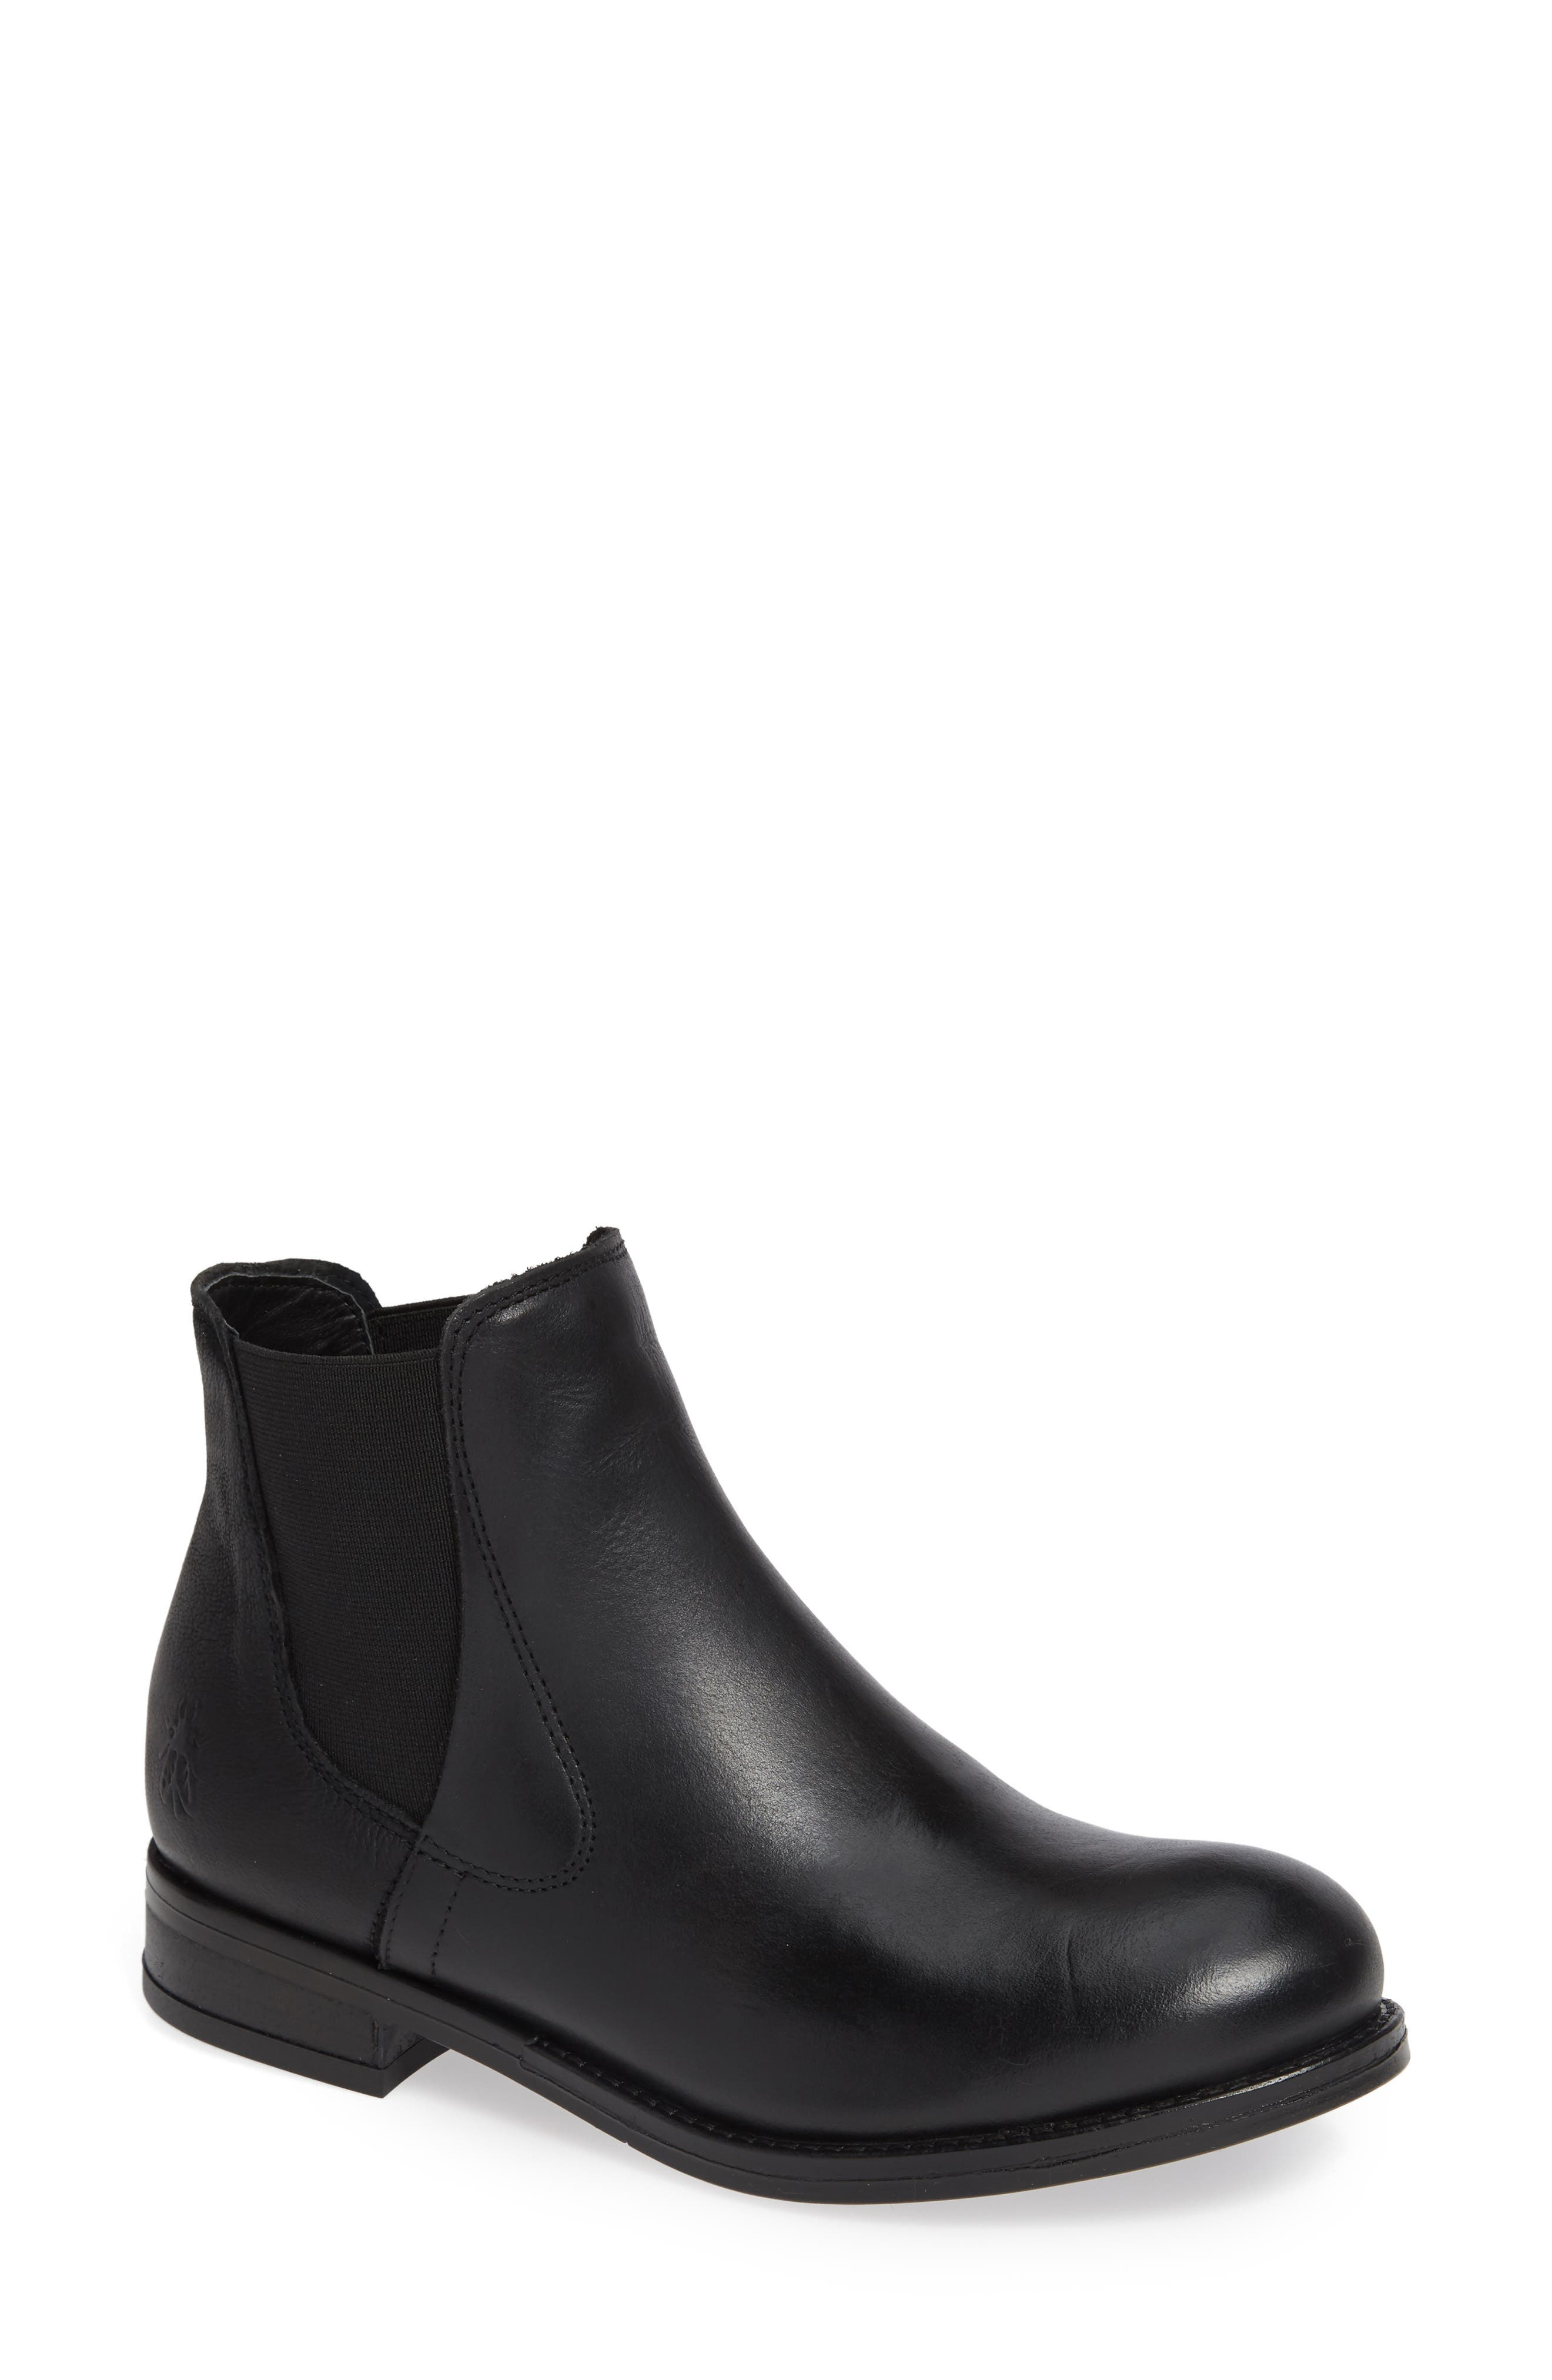 Fly London Alls Chelsea Bootie - Black